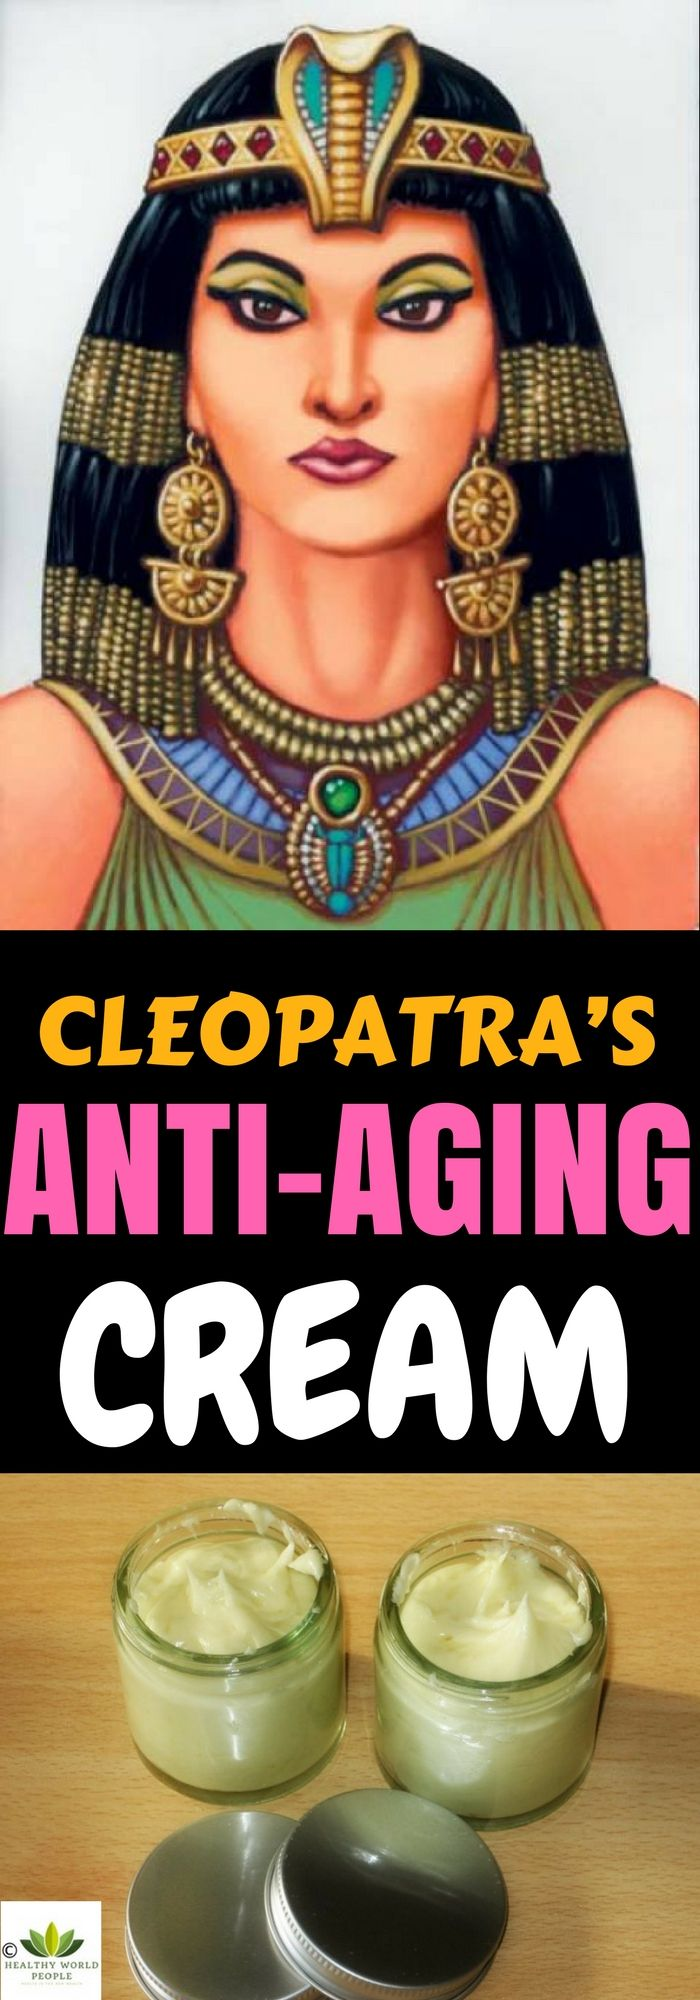 CLEOPATRA'S ANTI-AGING CREAM: MAKE IT YOURSELF ACCORDING THE OLD RECIPE THAT HAS PROVEN TO BE EFFECTIVE